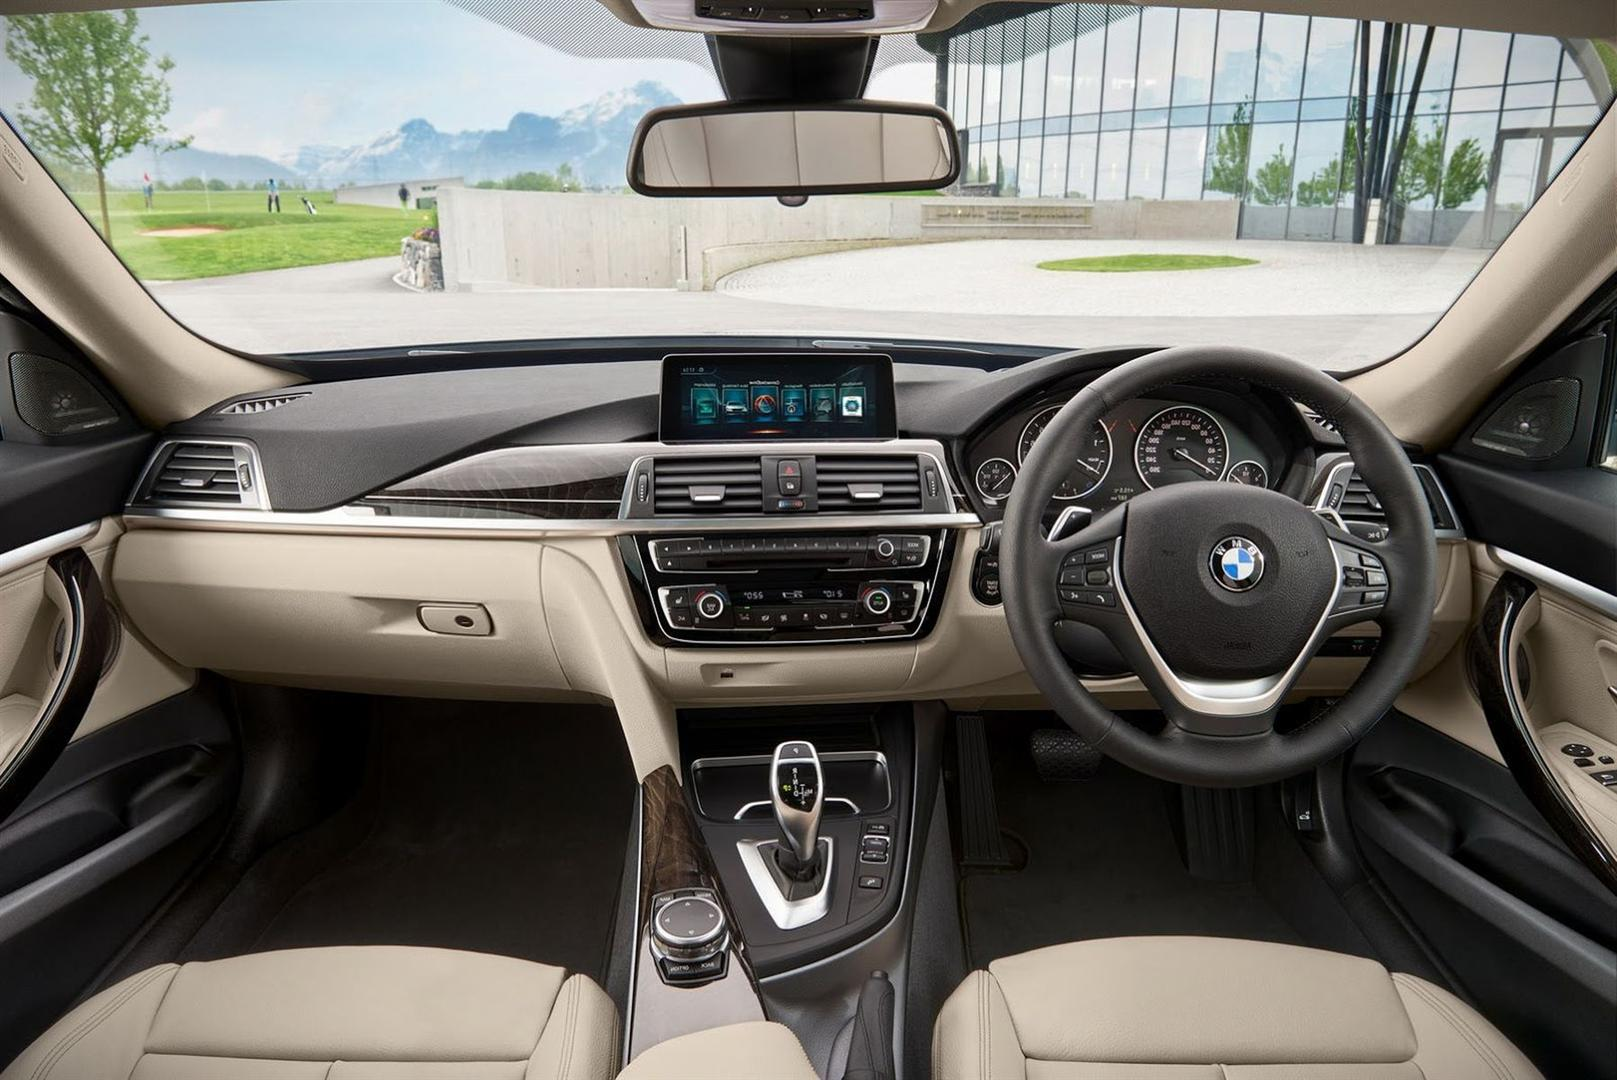 2019 BMW X7 Interior Images